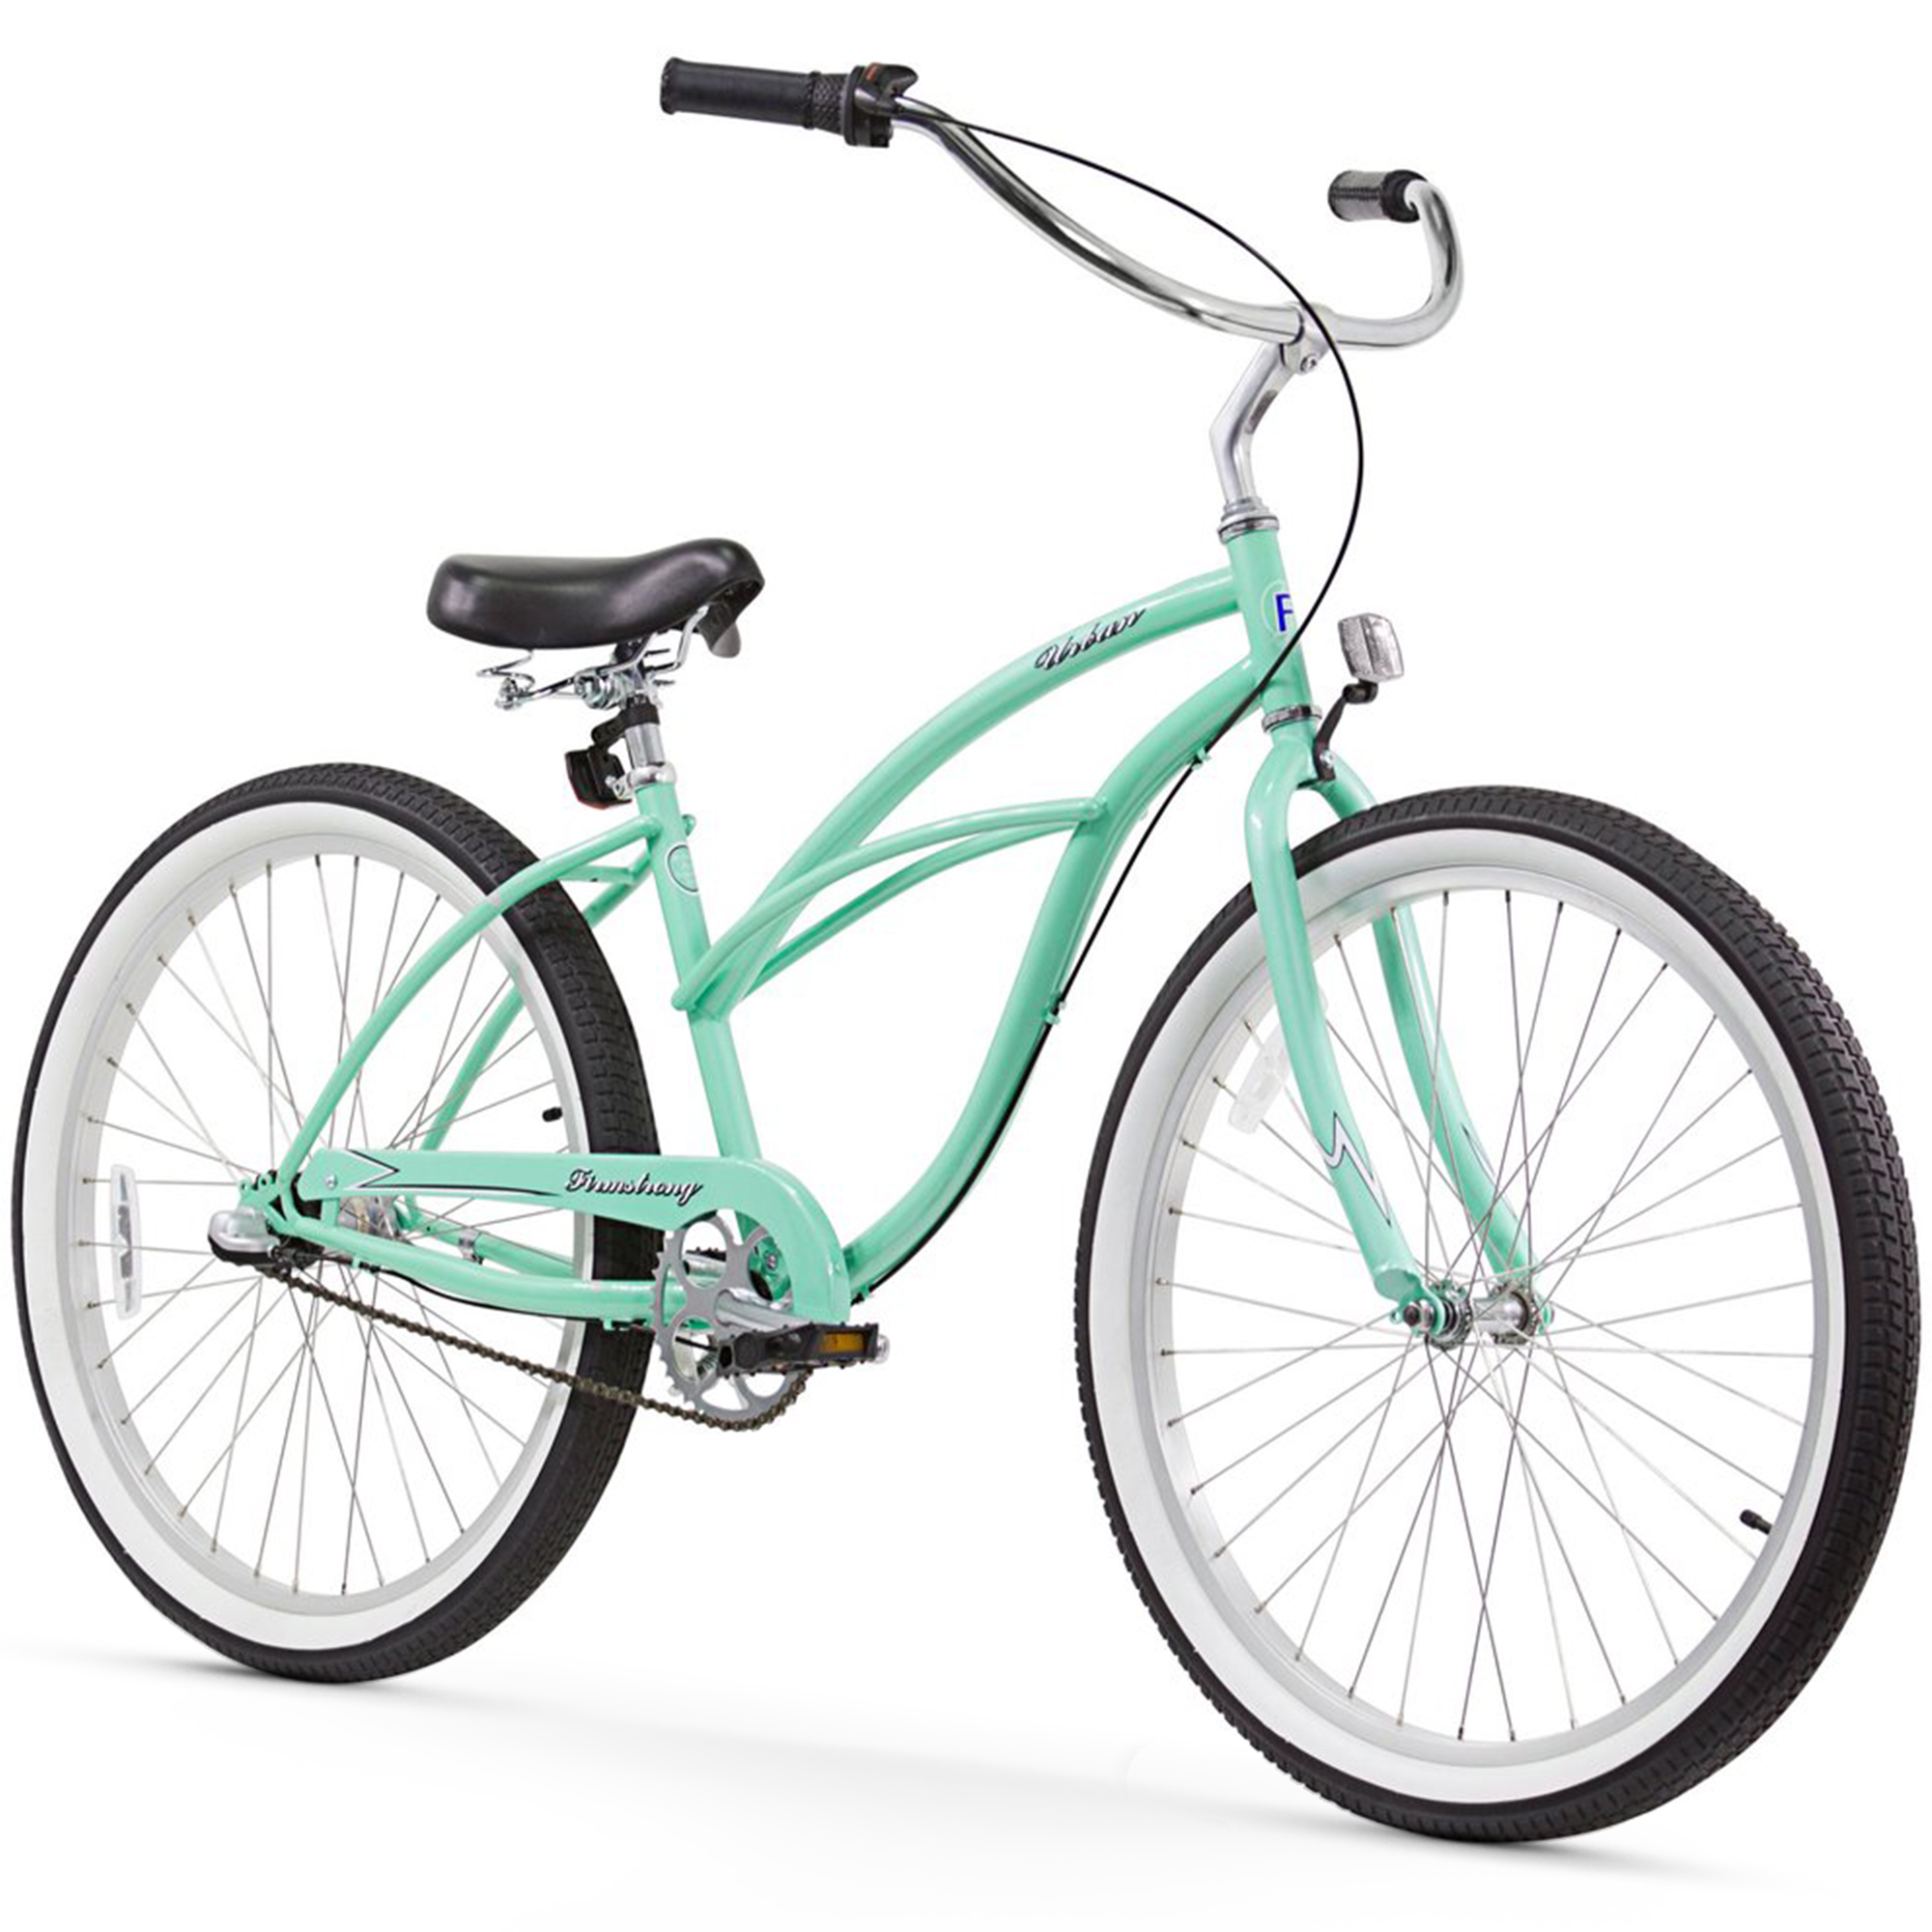 "Firmstrong Urban Lady, 26"", Women's, Three Speed, Mint Green"